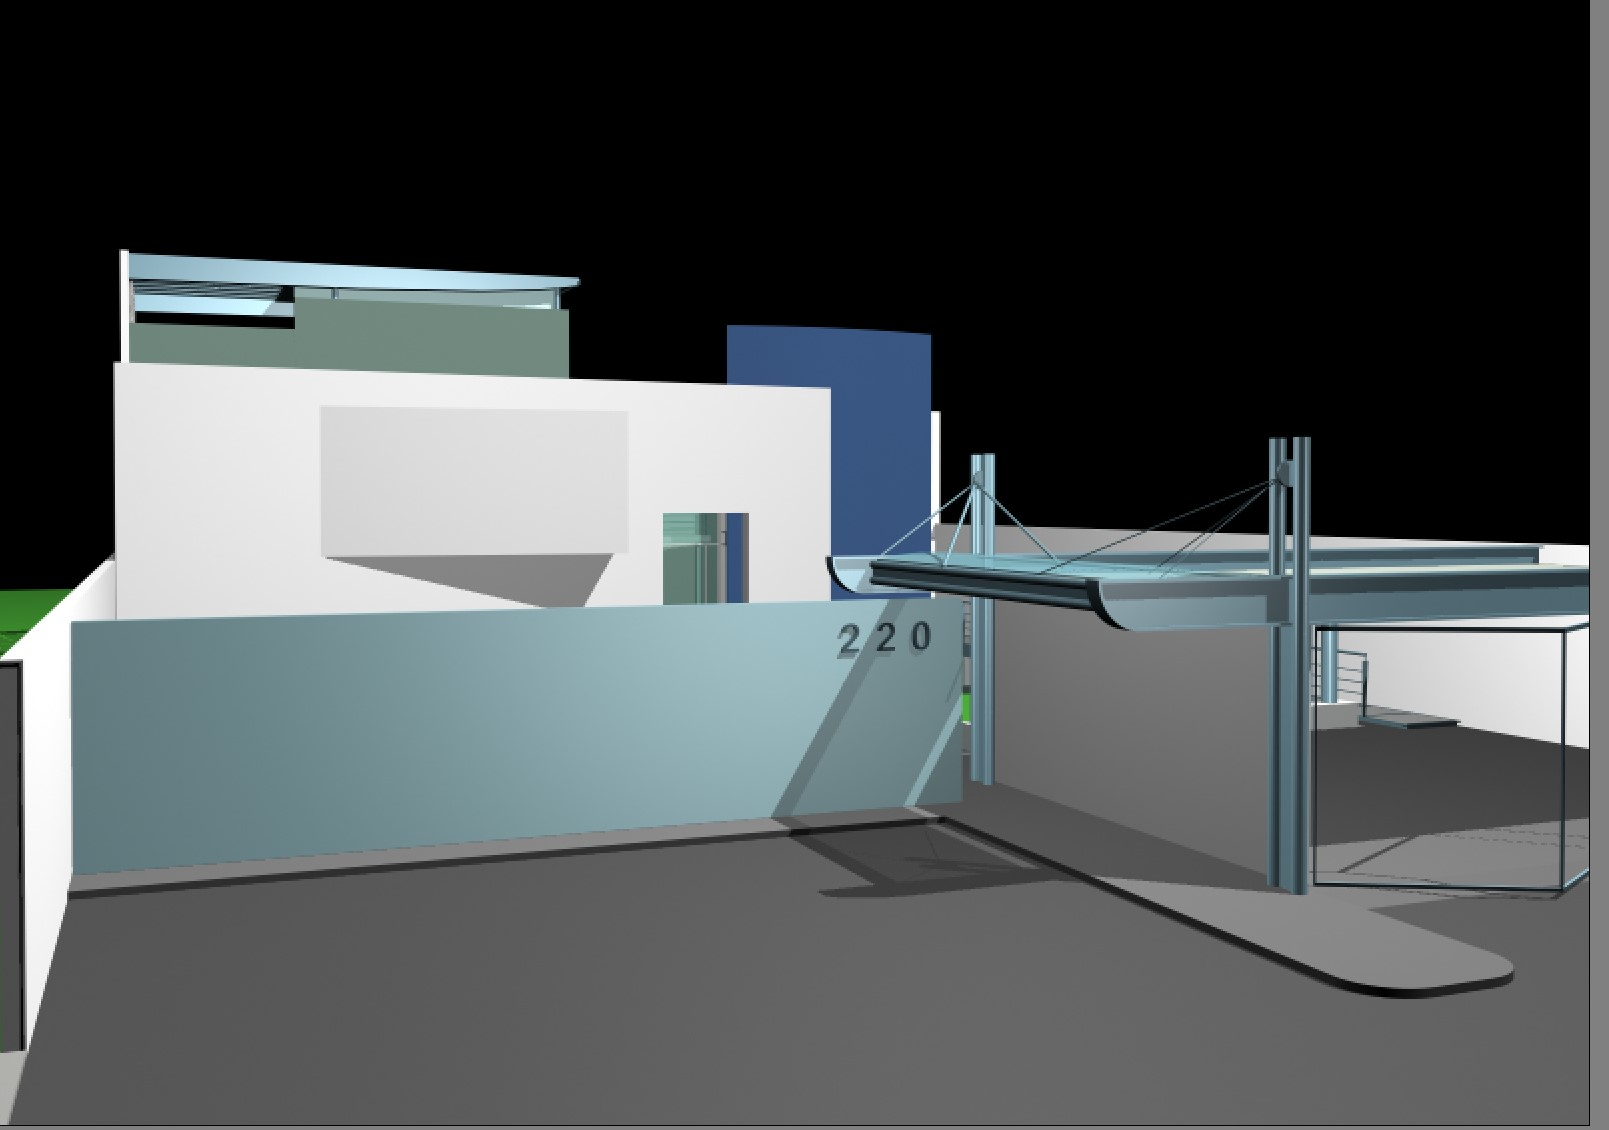 Contemporary house plan detail dwg file.